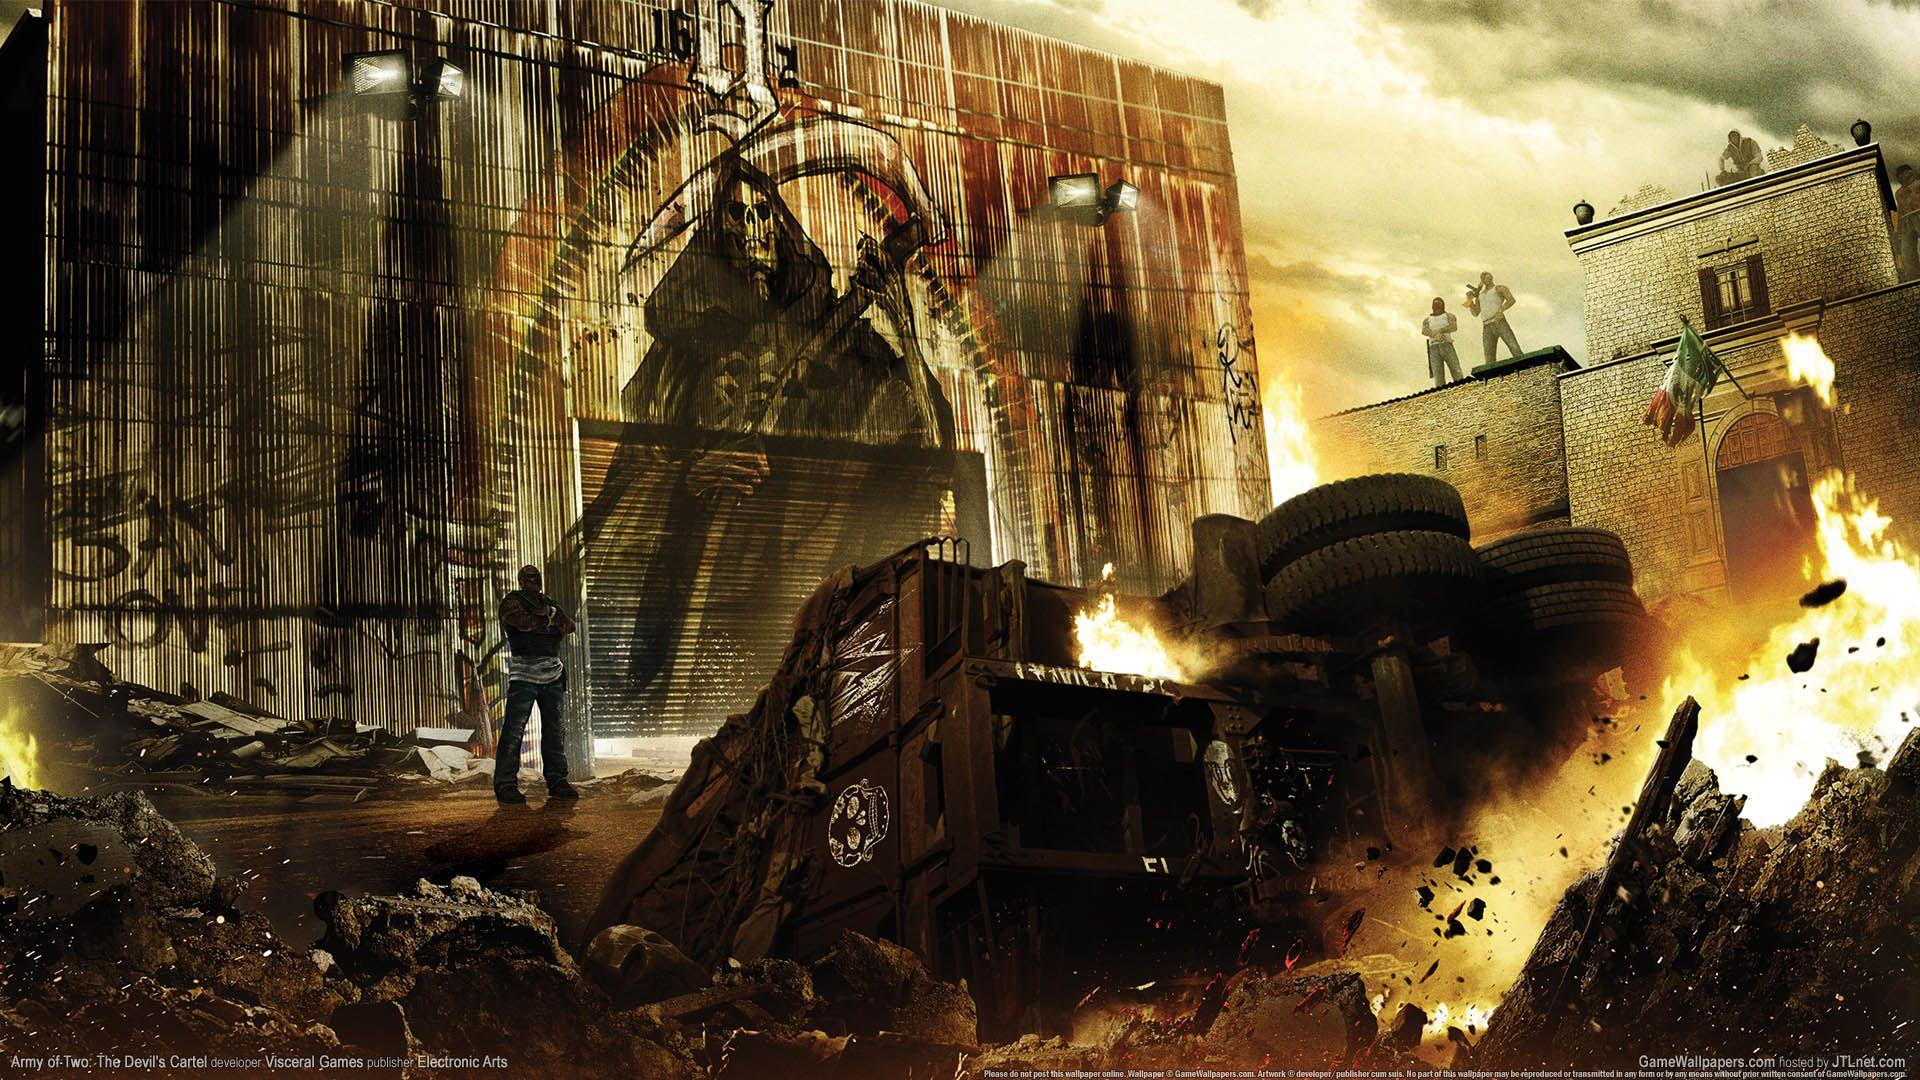 Army Of Two Wallpaper and Background Image | 1680x1050 ... |Army Of Two Wallpaper 1920x1080